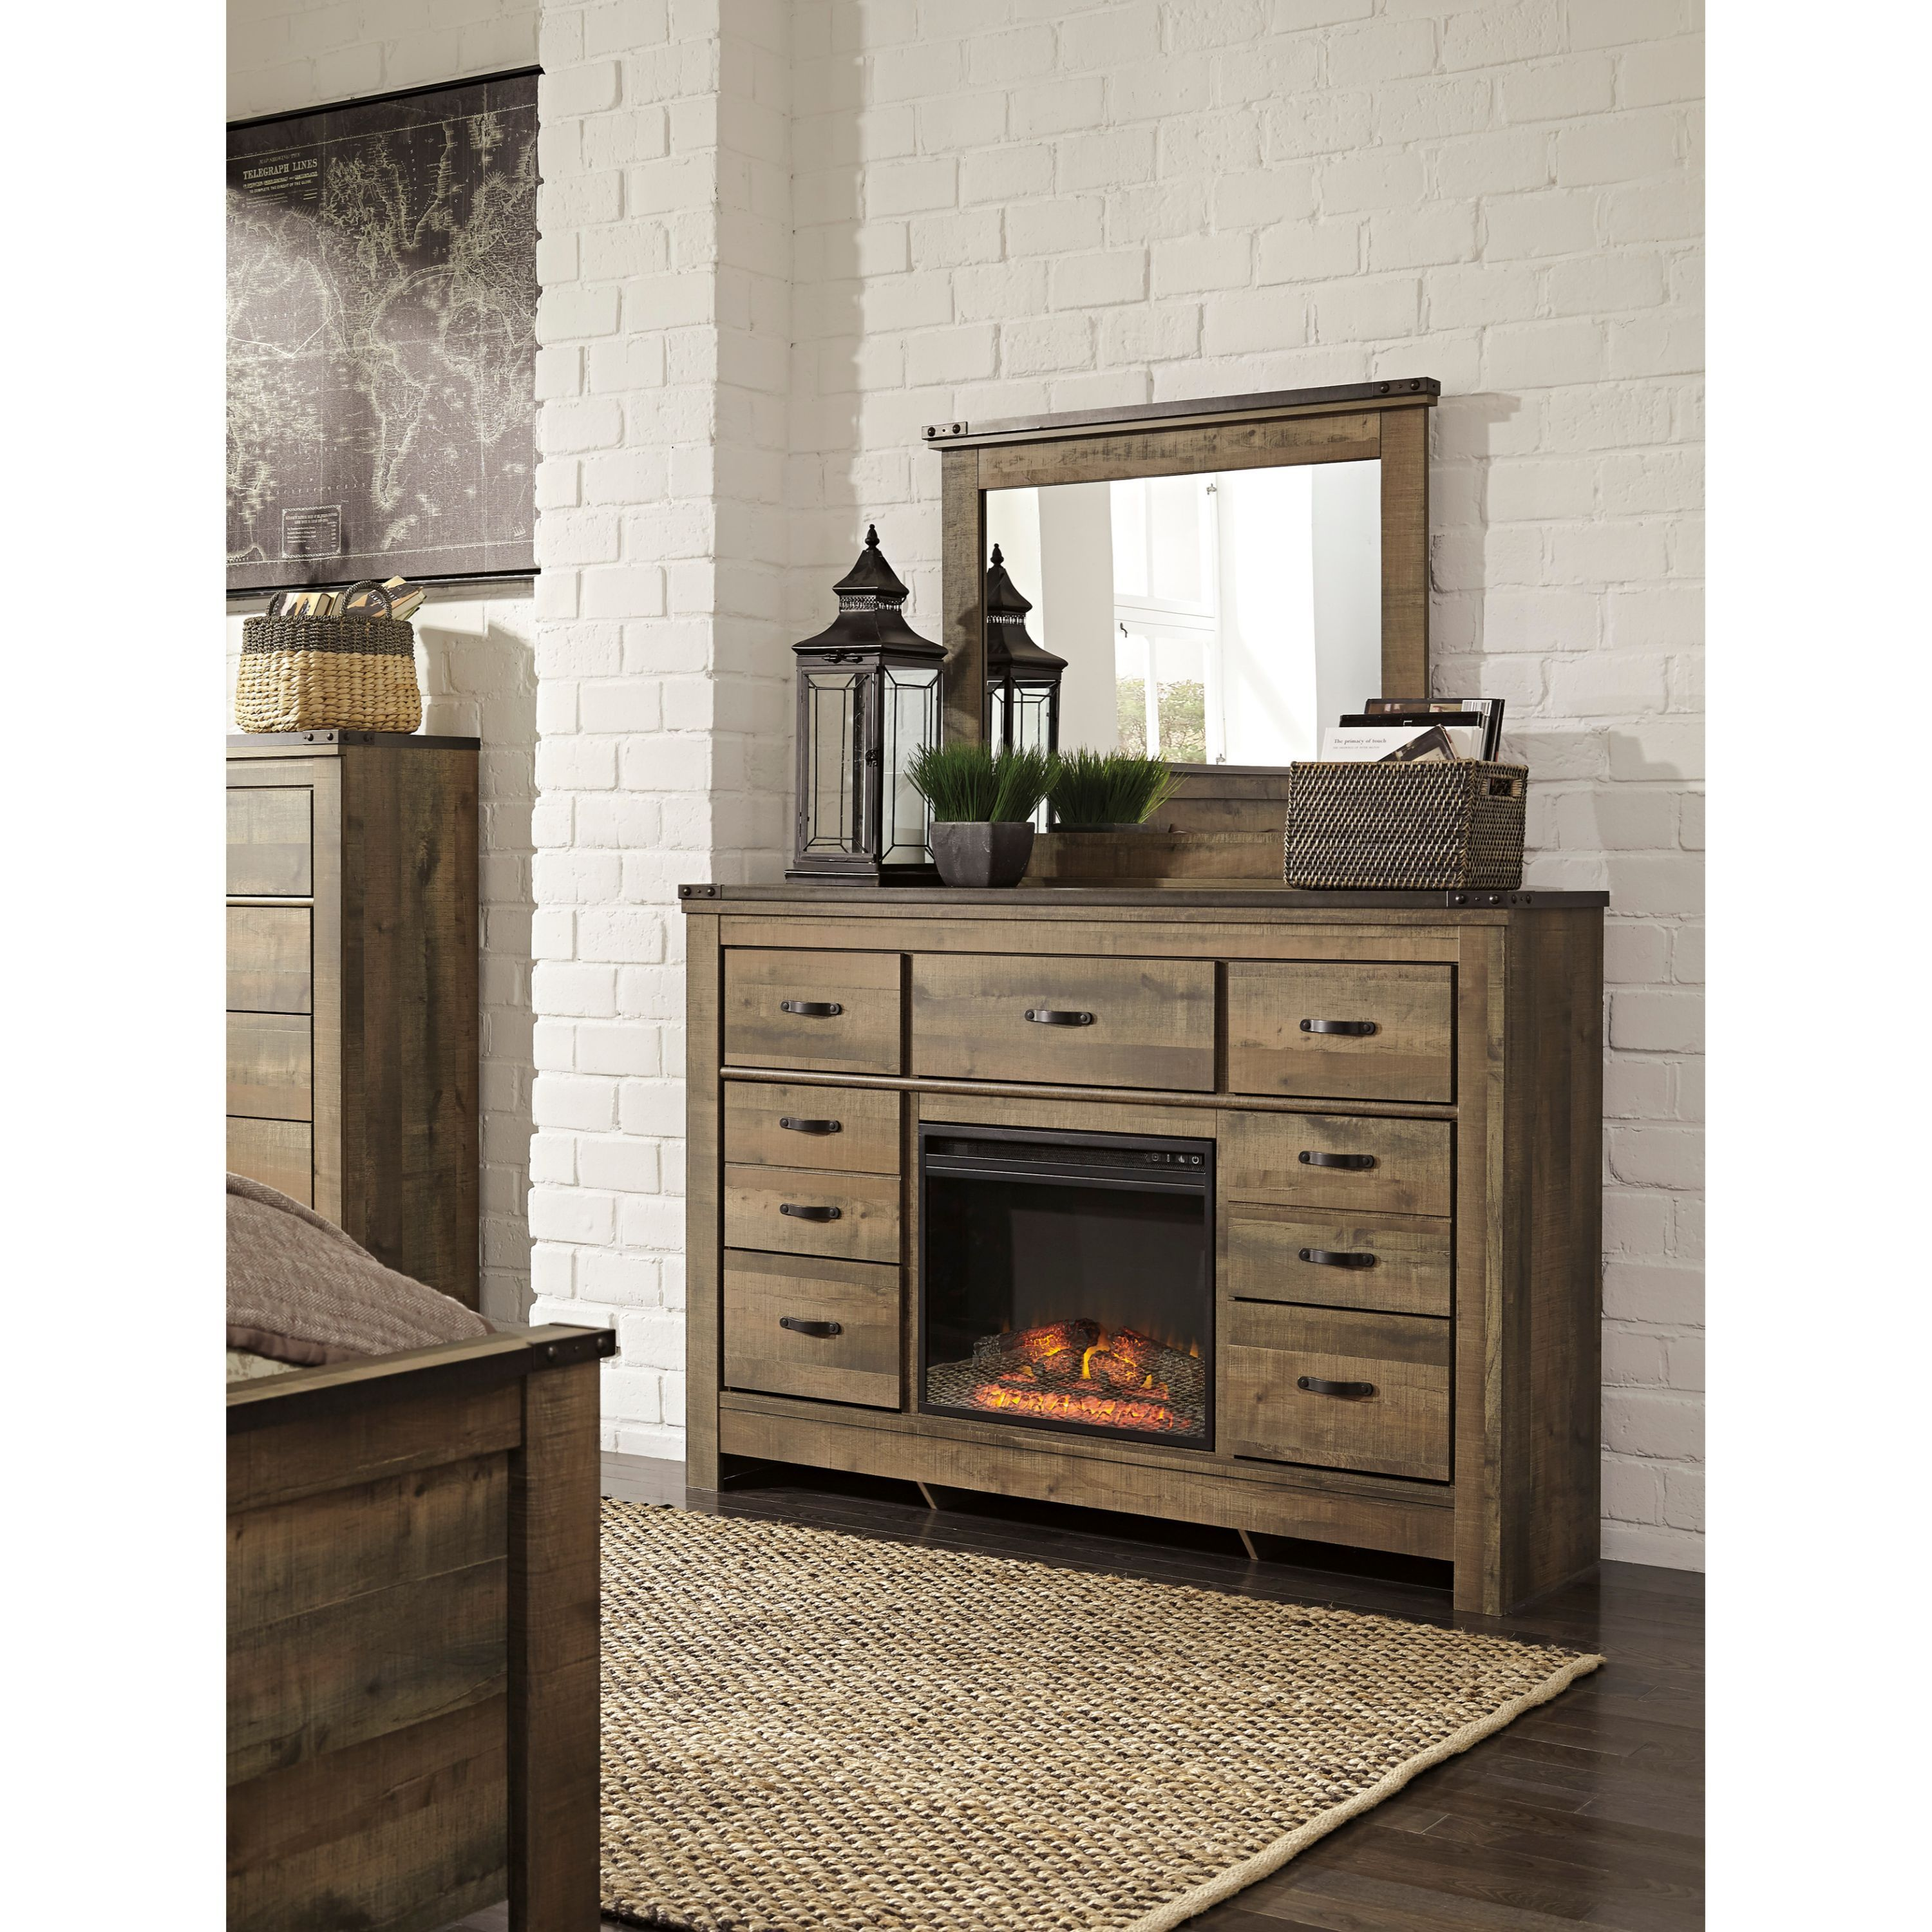 Signature Design by Ashley Trinell Brown Dresser with